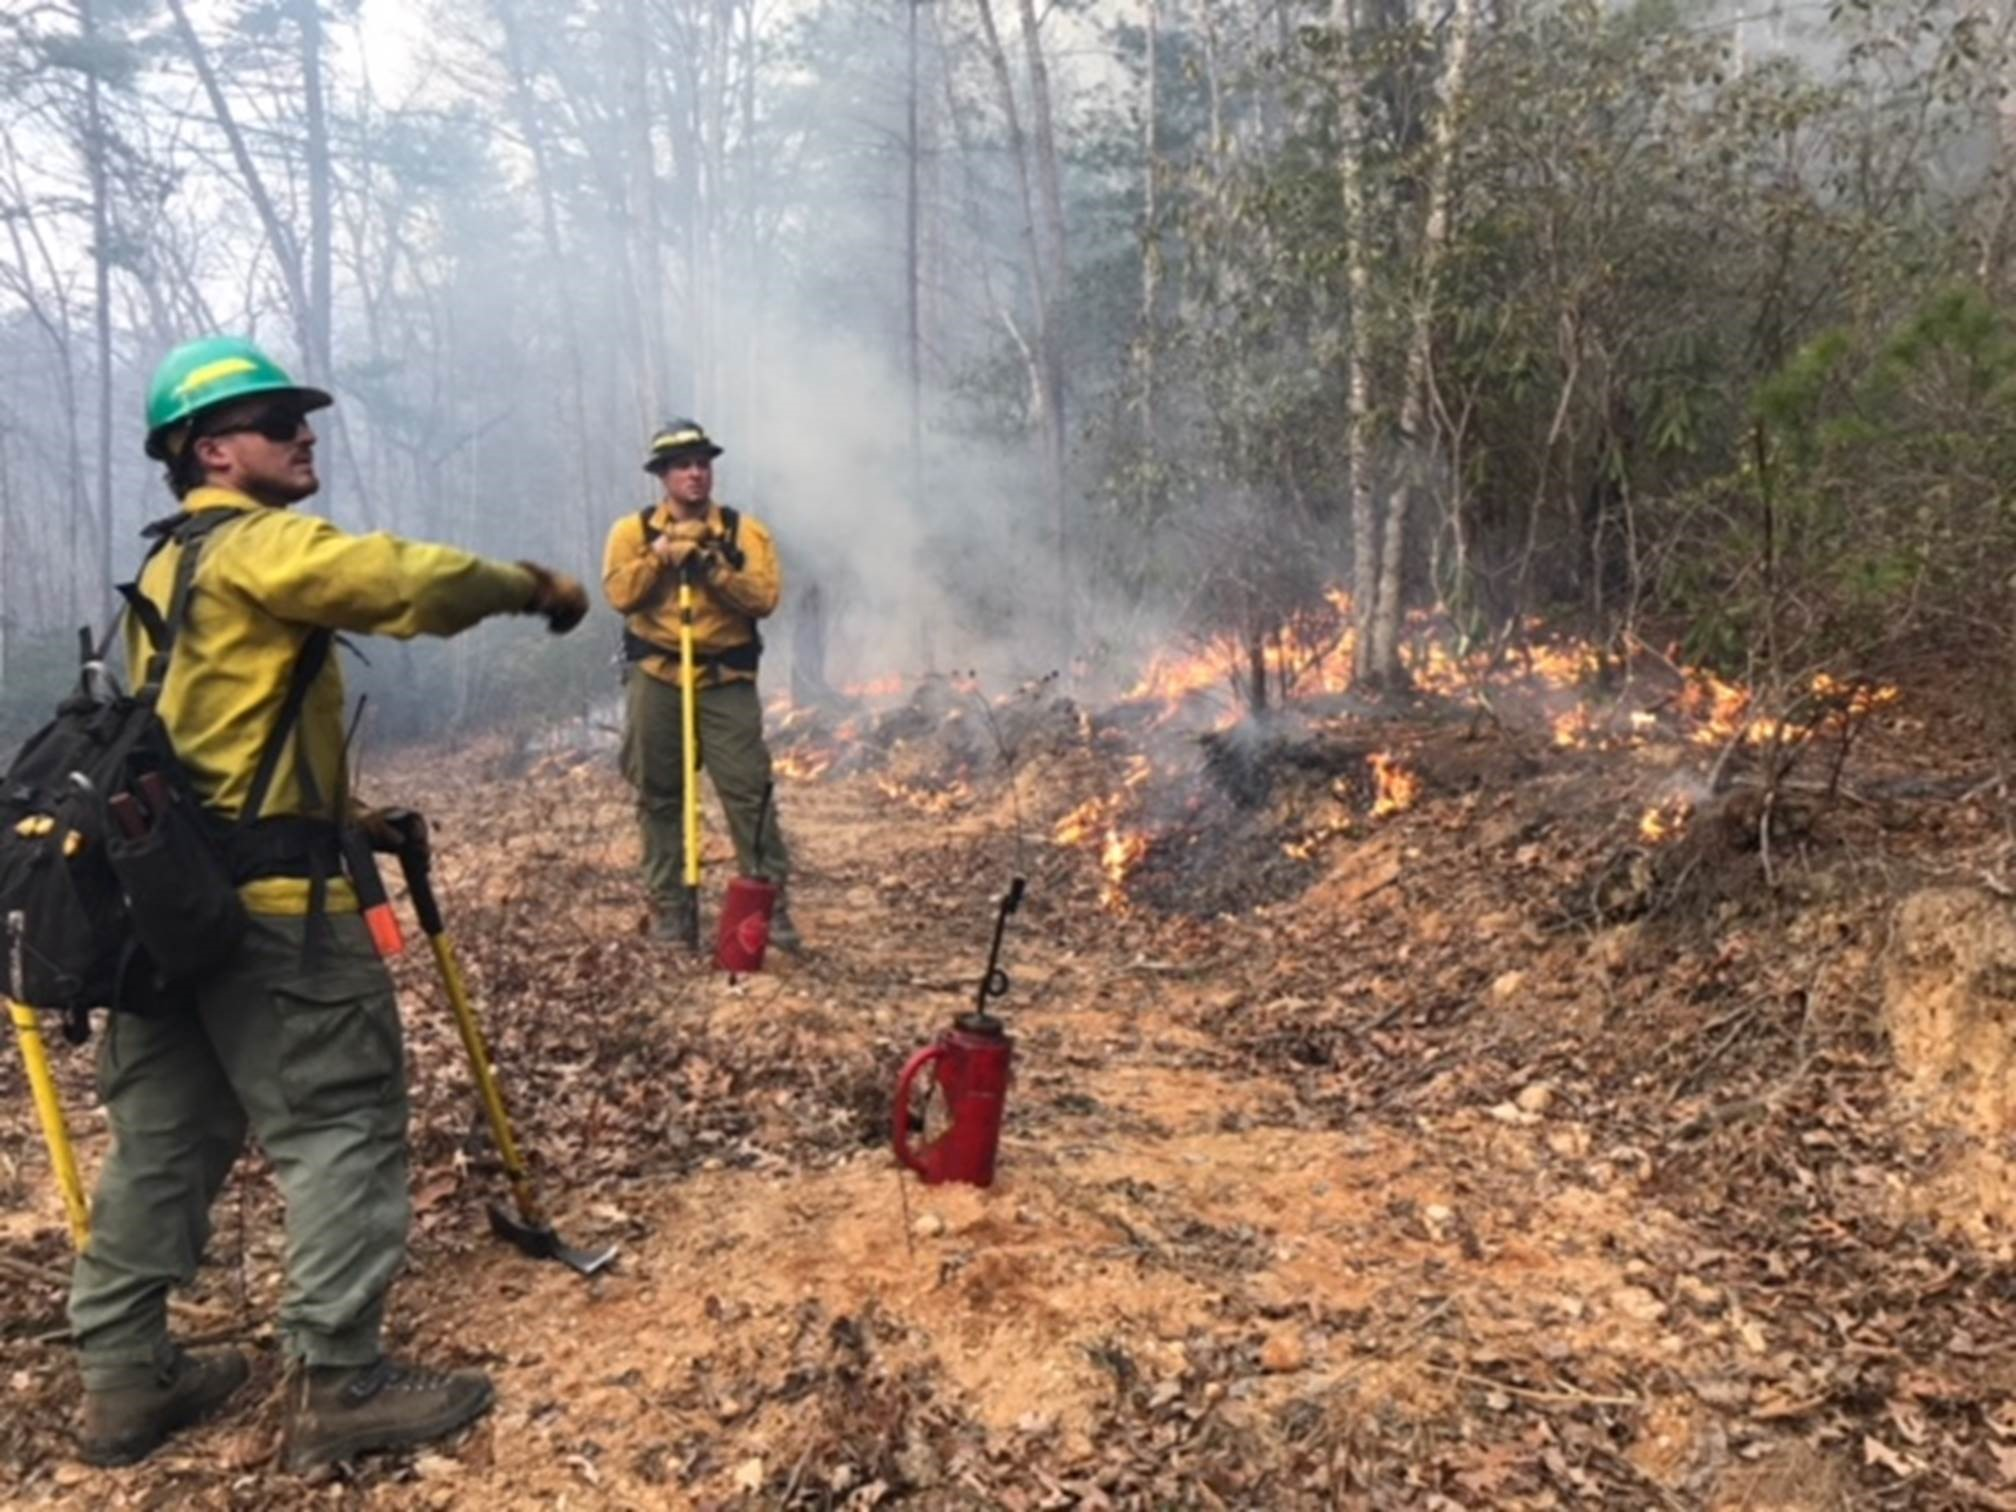 The U.S. Forest Service has already had to deal with one significant woods fire in the mountains -- Coxes Creek No. 7 Fire. (Photo credit: U.S. Forest Service)